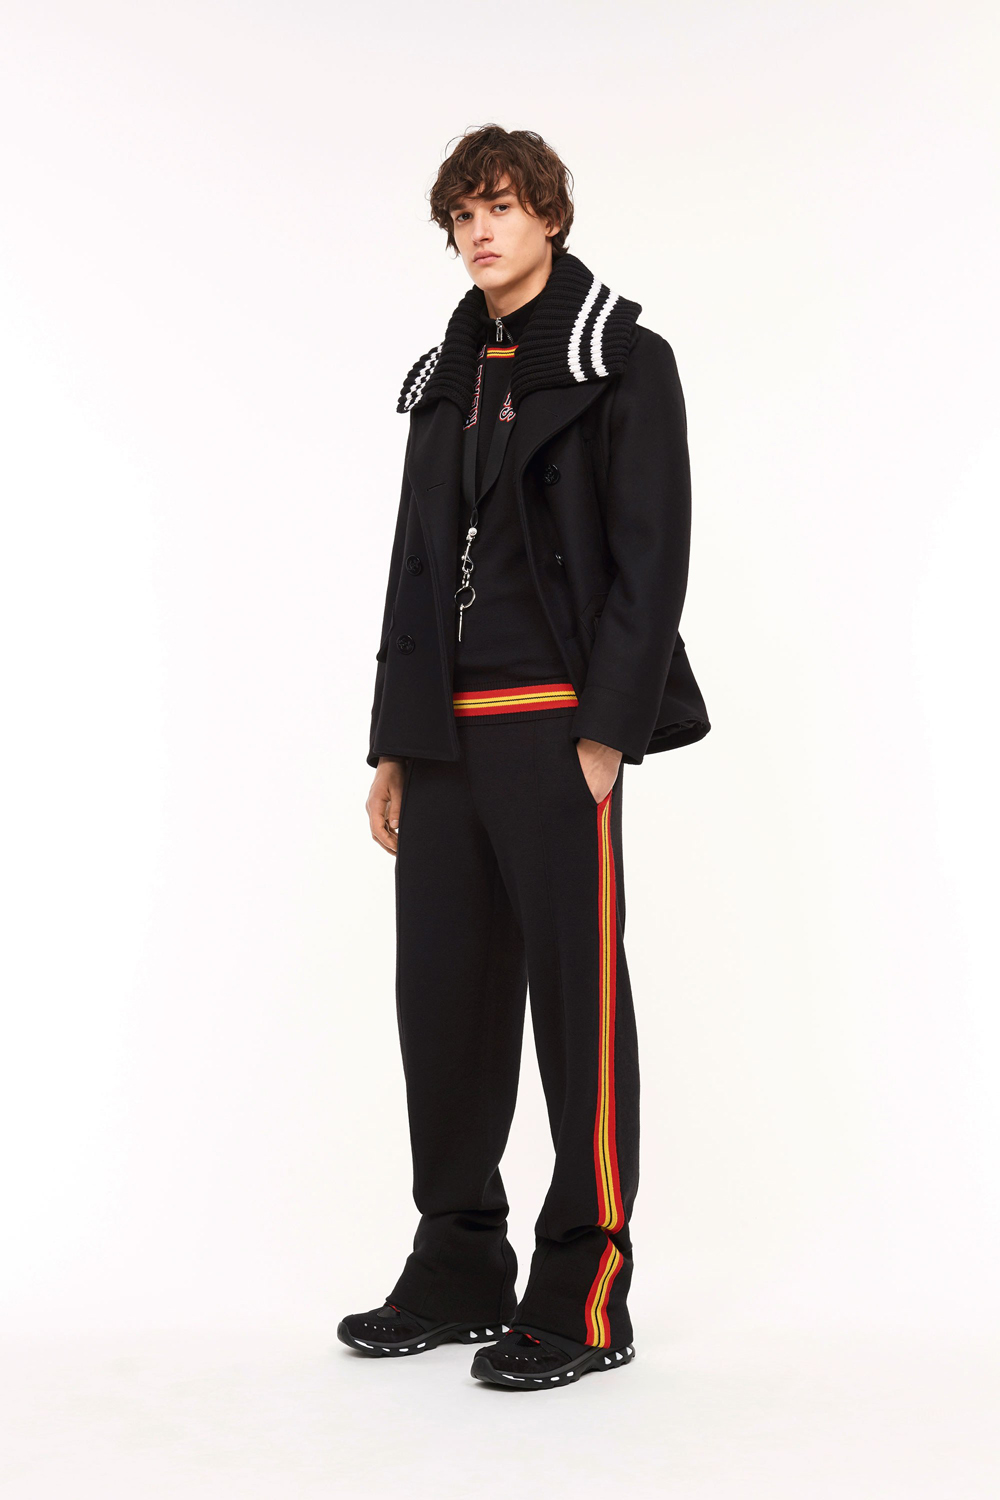 15-givenchy-prefall-17